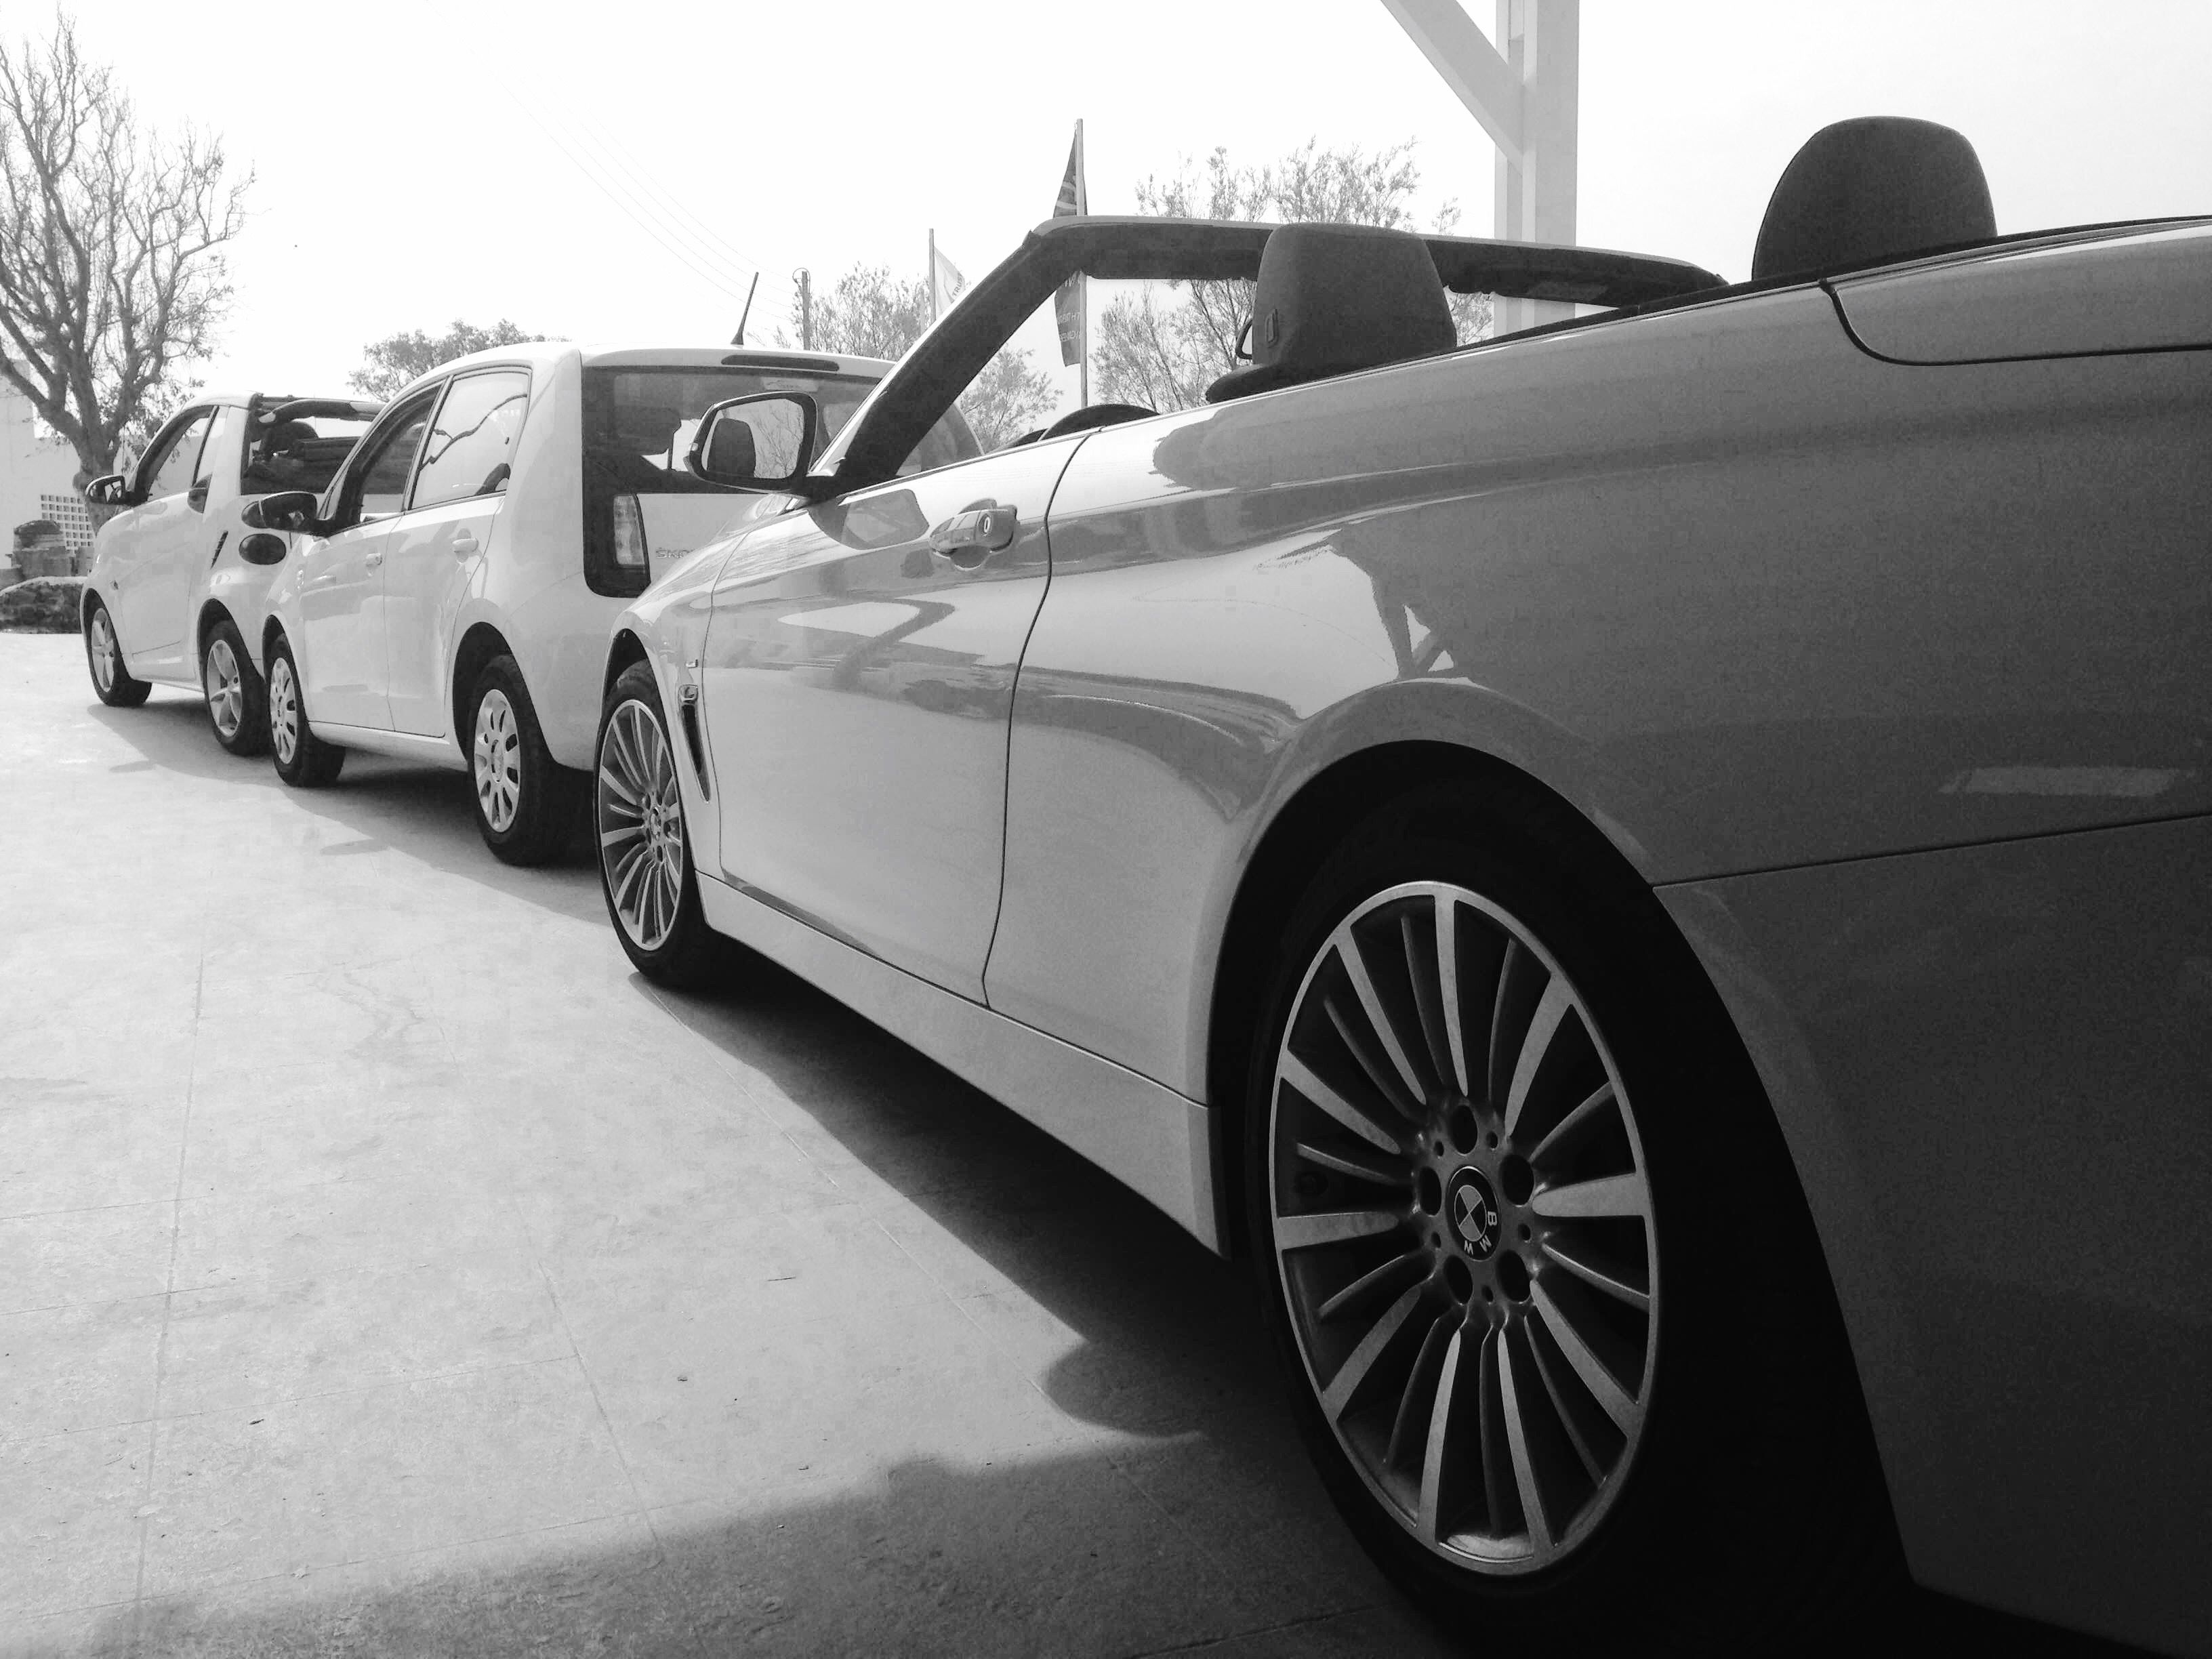 Bmw Convertible We Are All Set And Ready To Welcome You Limousine Luxury Cars Luxury Car Rental